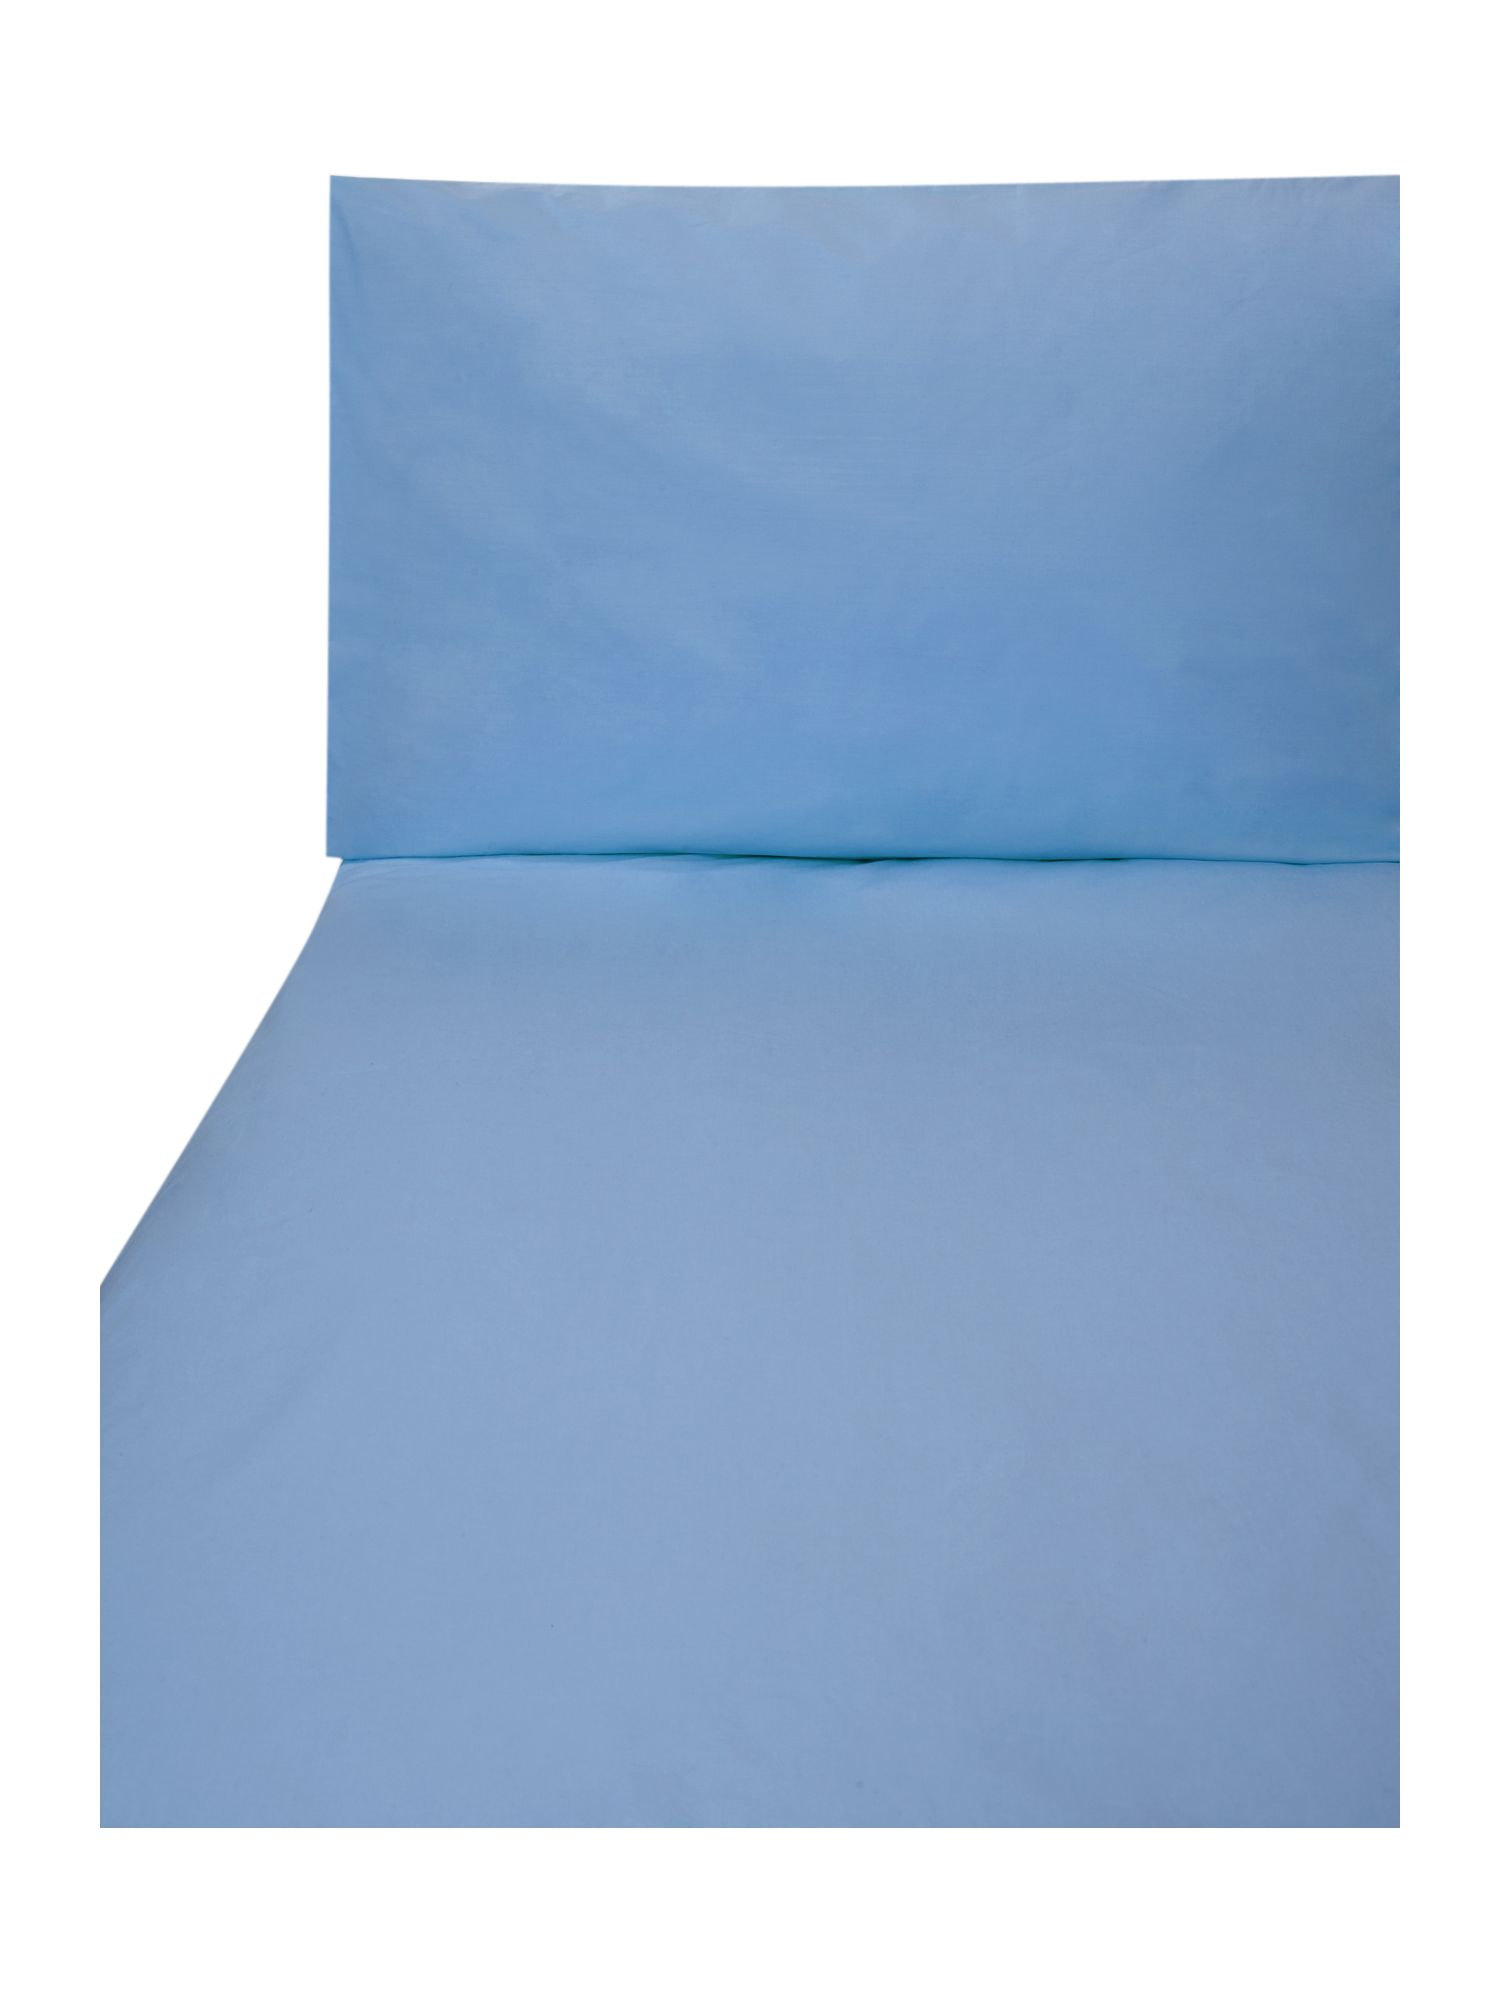 100% cotton plain dye bedlinen in denim